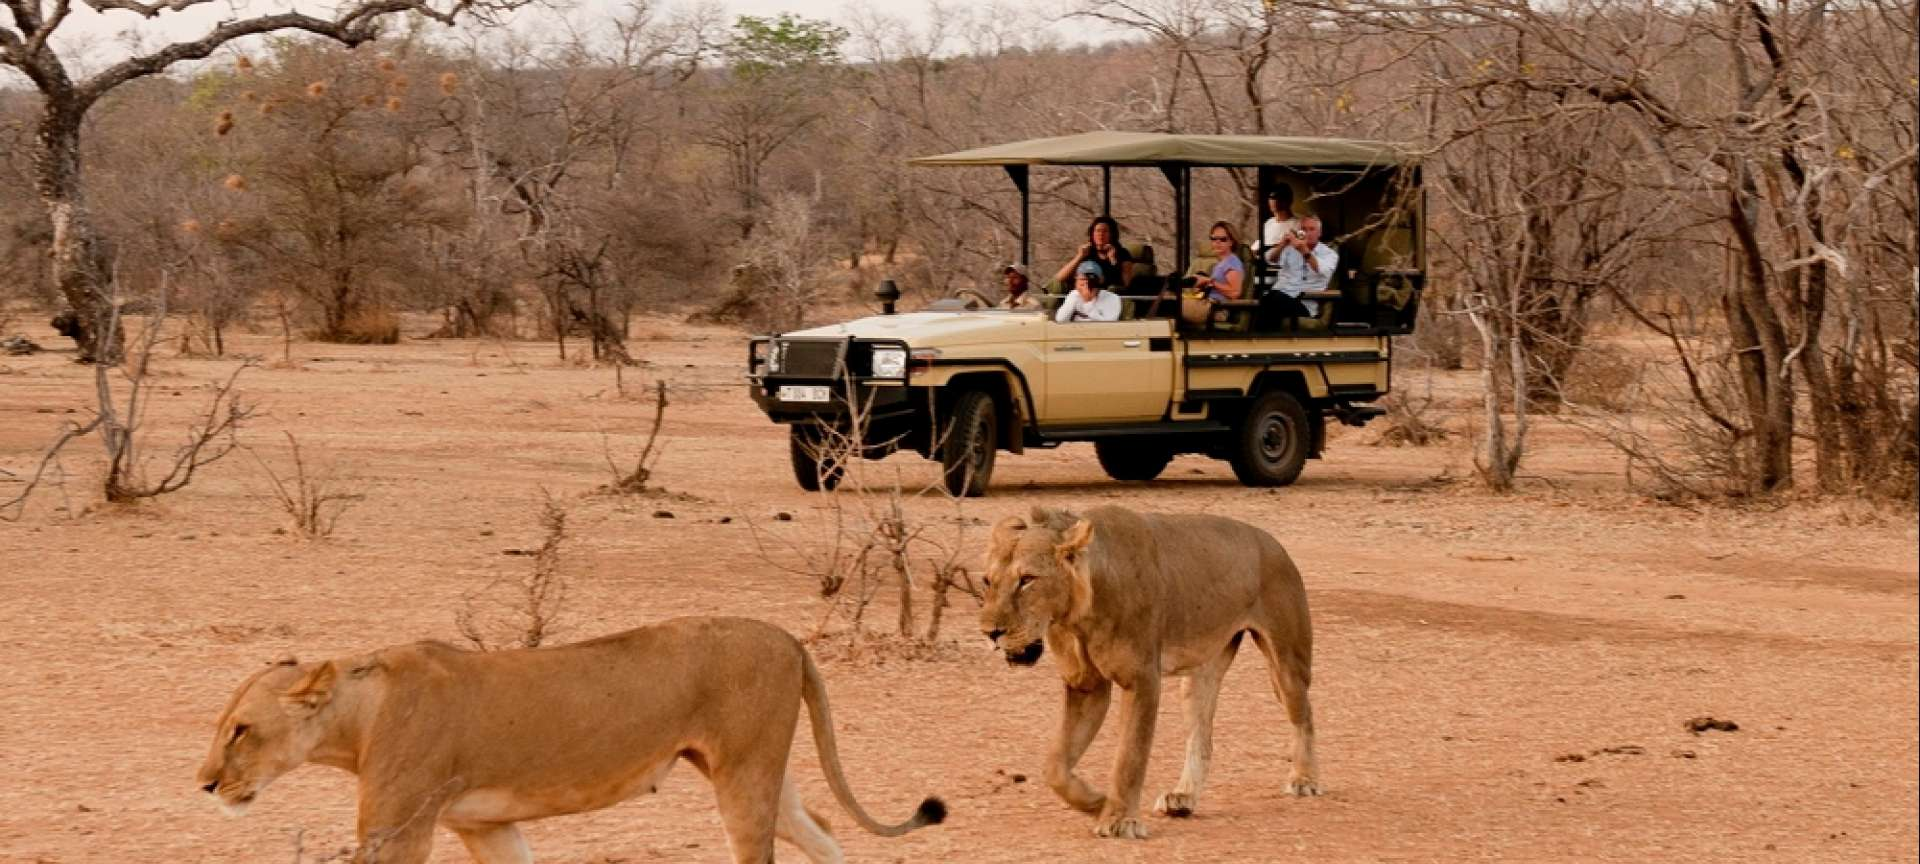 The Selous Game Reserve is one of the most enjoyed in Tanzania